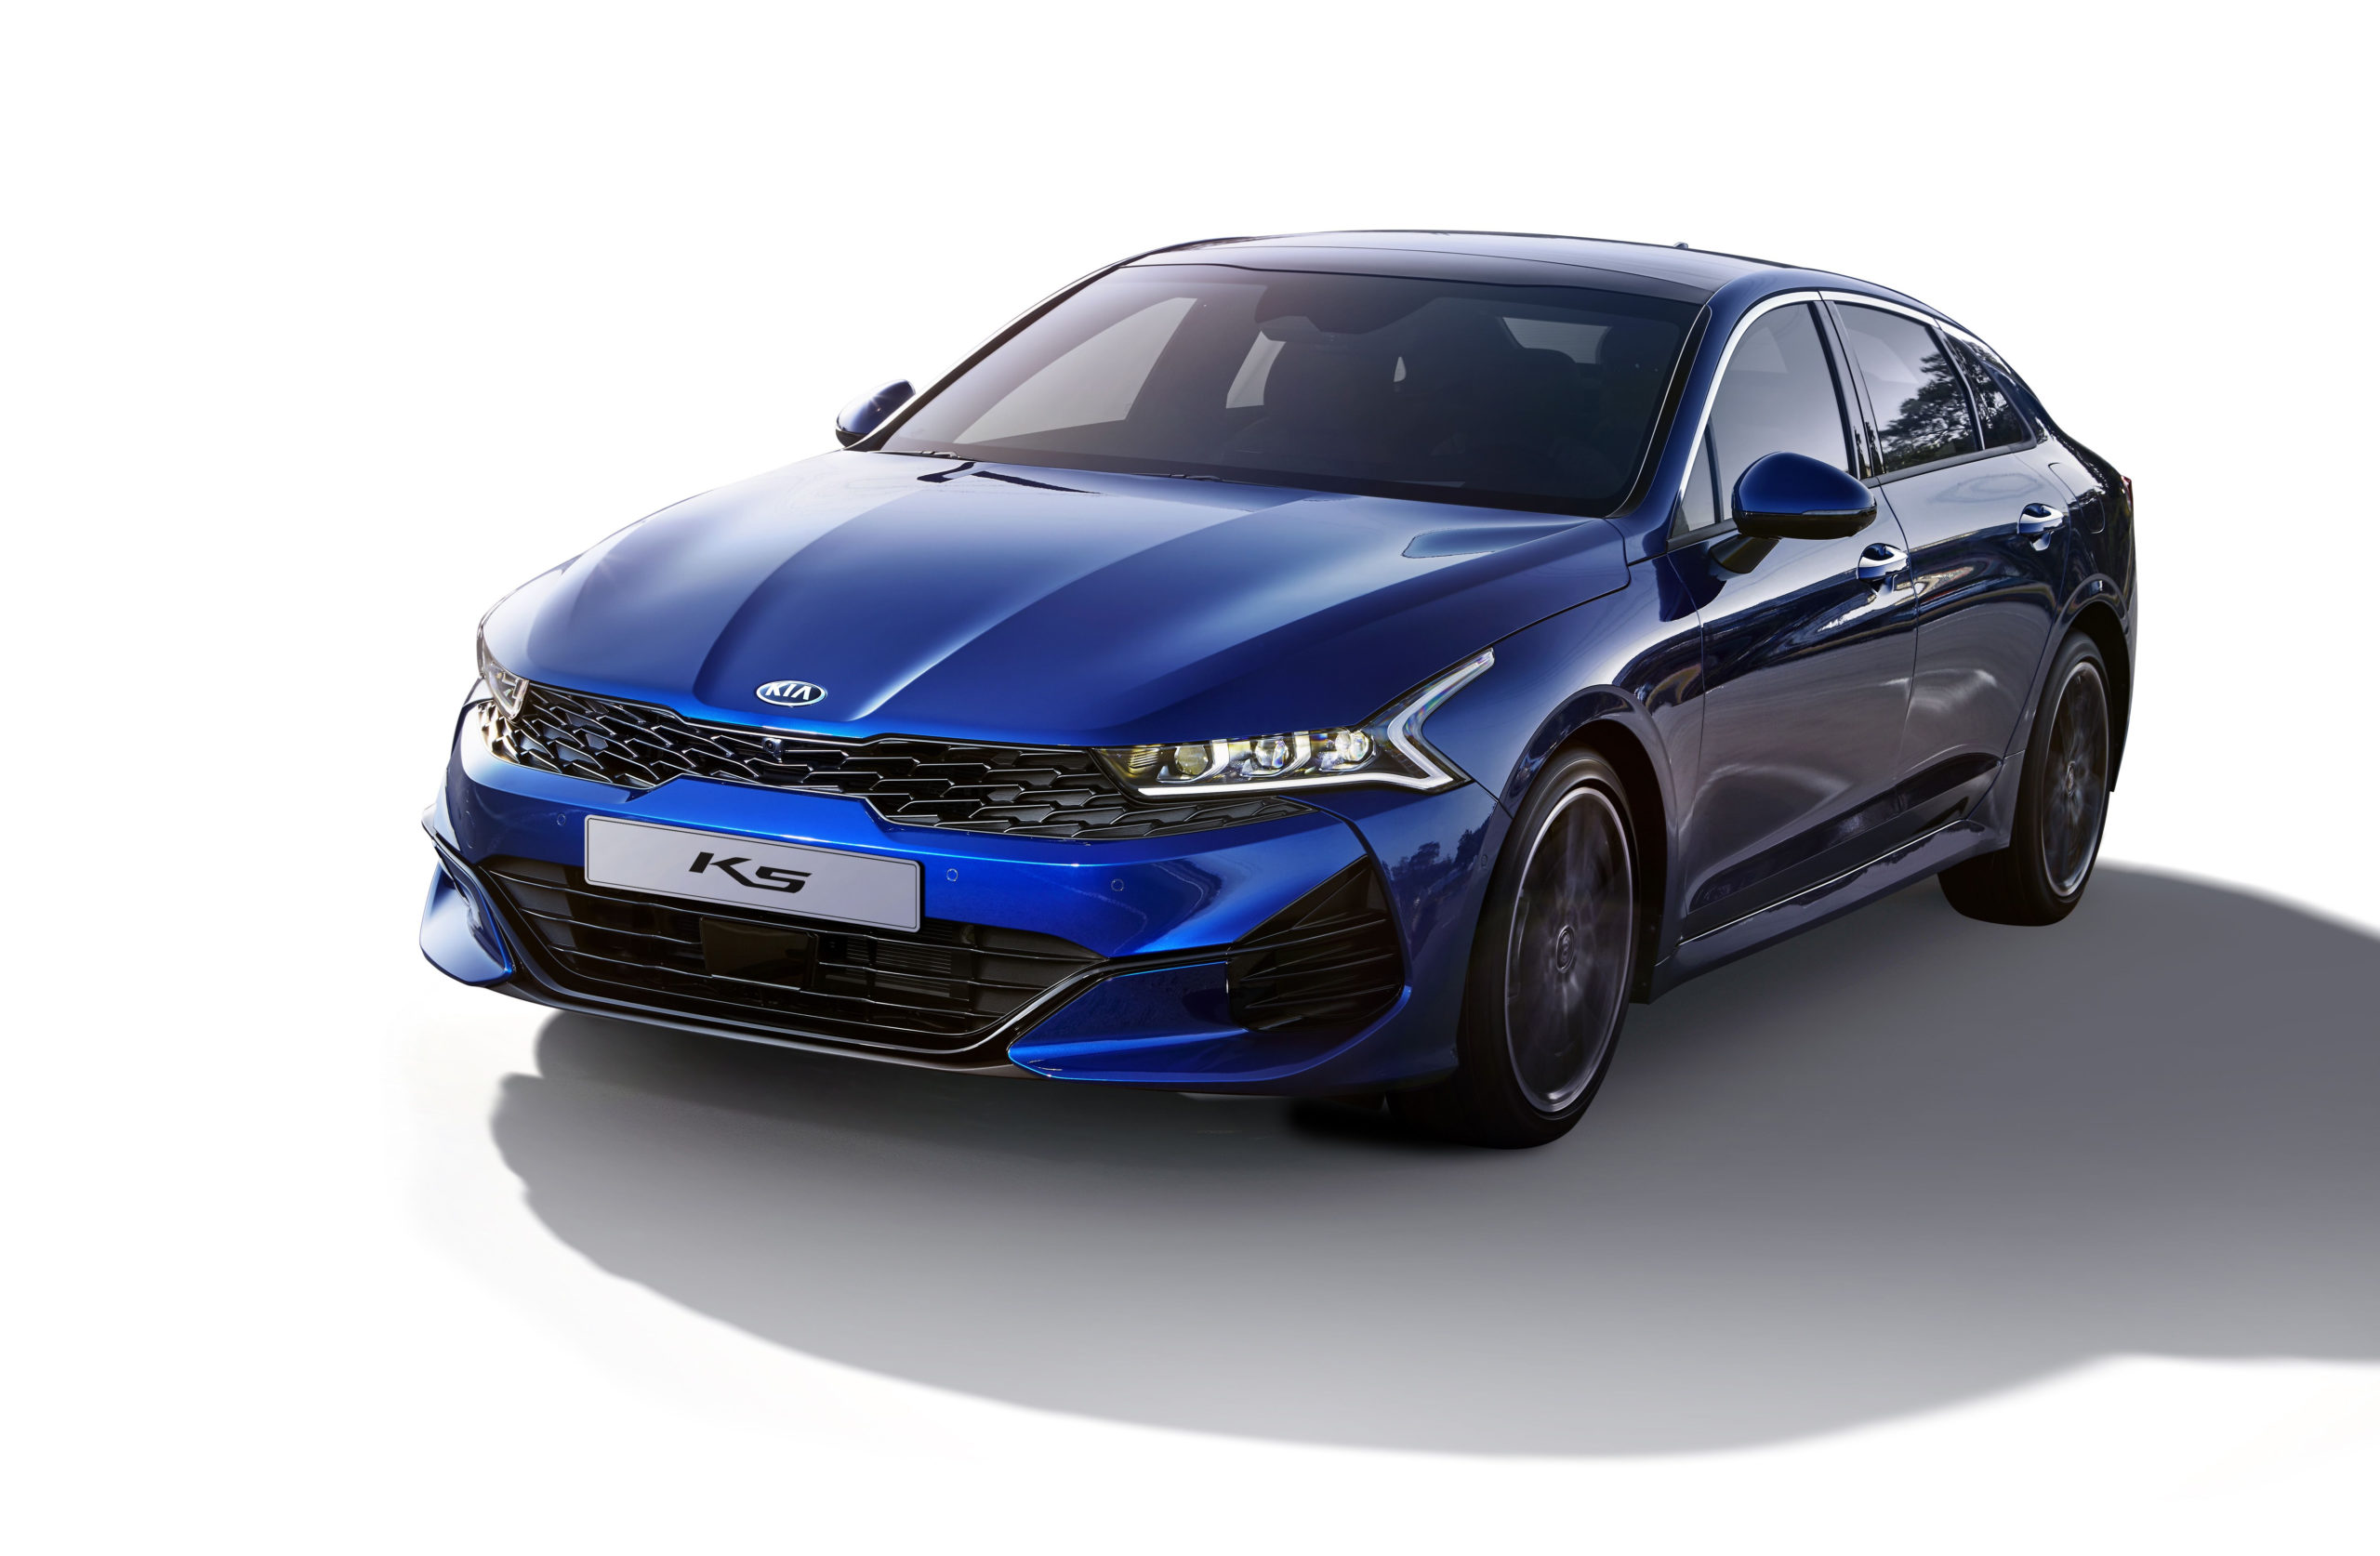 2021 Kia Optima Looks Sharp, Gets Awd - 2022 Kia Optima Engine 2.4 L 4-Cylinder